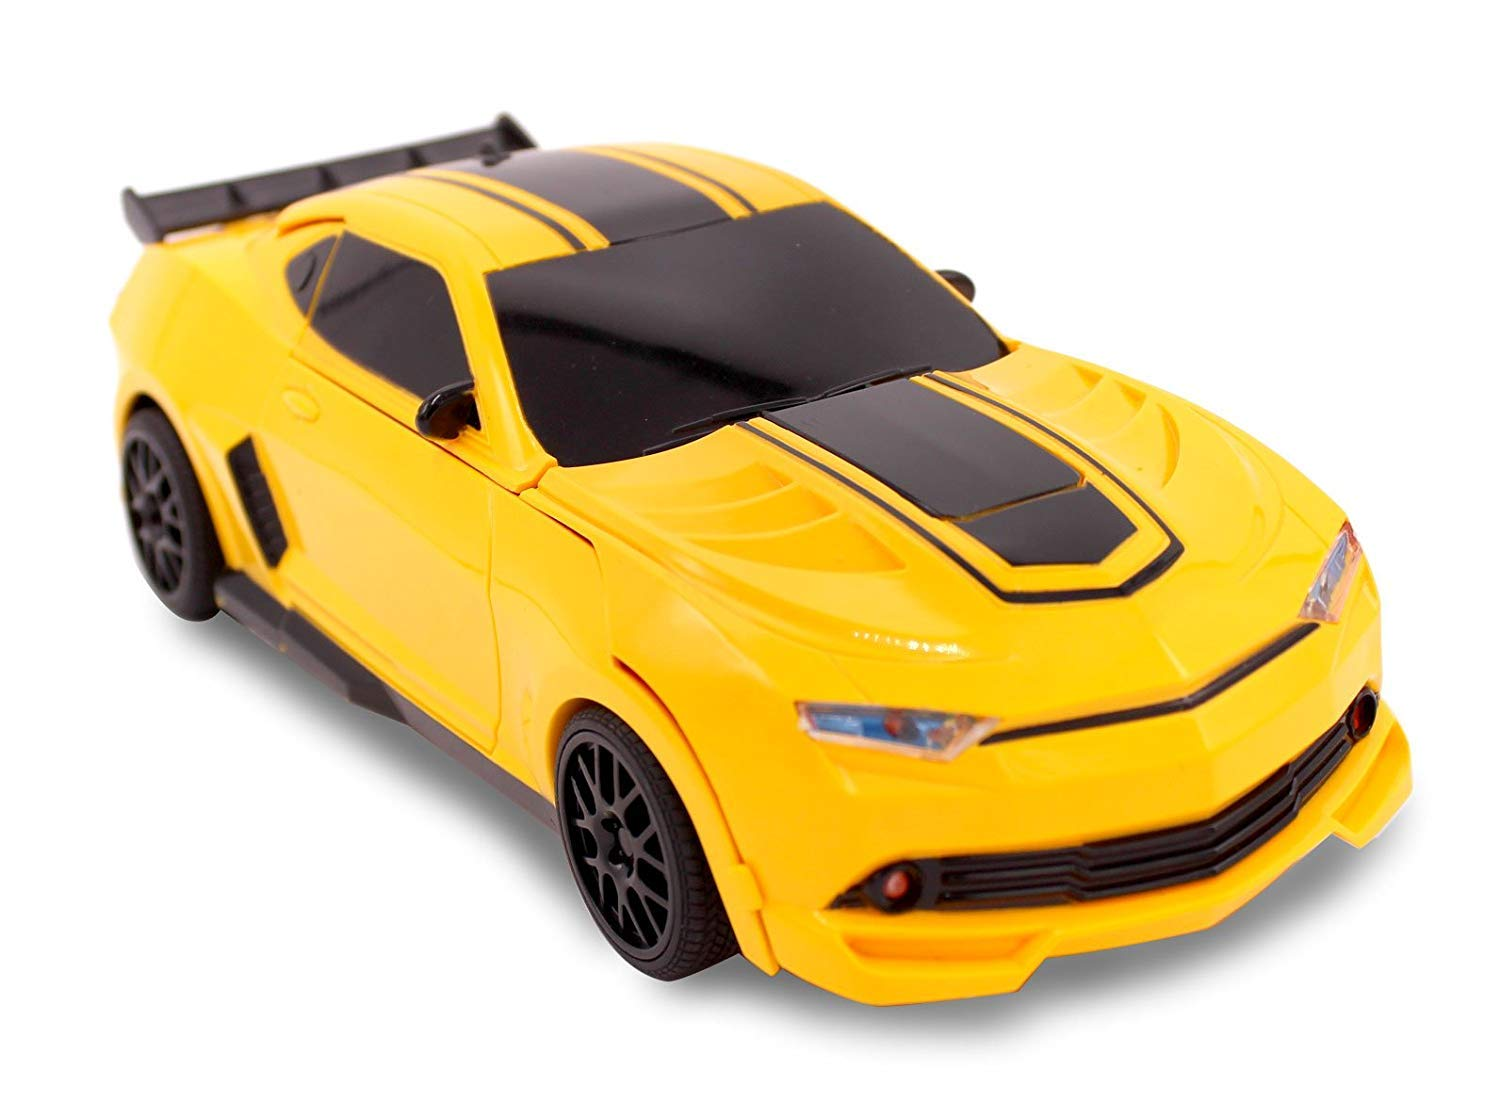 Kids RC Toy Transforming Robot Remote Control (27 MHz) Sports Car One Button Transformation Realistic Engine Sounds 360 Speed Drifting 1:22 Scale Toys For Boys (Yellow) by Transformania Toys (Image #2)